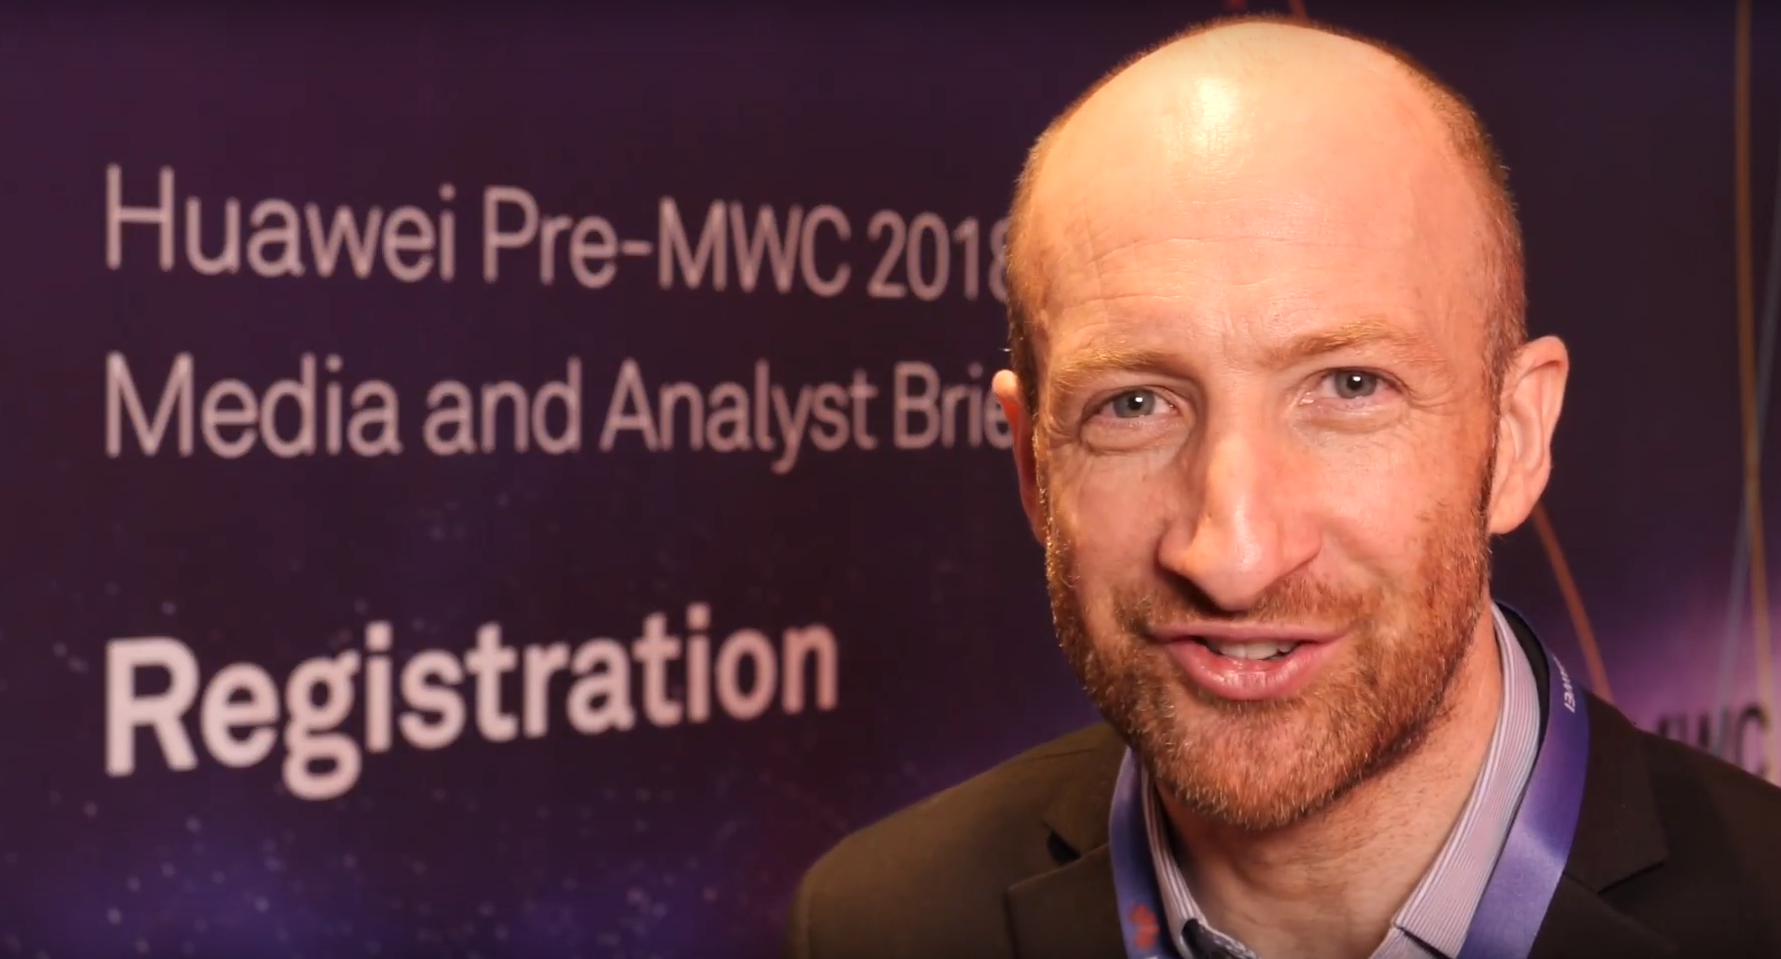 Professor Kevin Curran, Ulster University at Huawei PreBrief 2018 in London talking about IoT traffic using more bandwidth than human traffic, Narrow-band IoT (NB-IoT) and 8K video. Kevin also interviews Peter Zhou, Chief Marketing Officer, Huawei Wireless Network Product Line on the future of 5G.